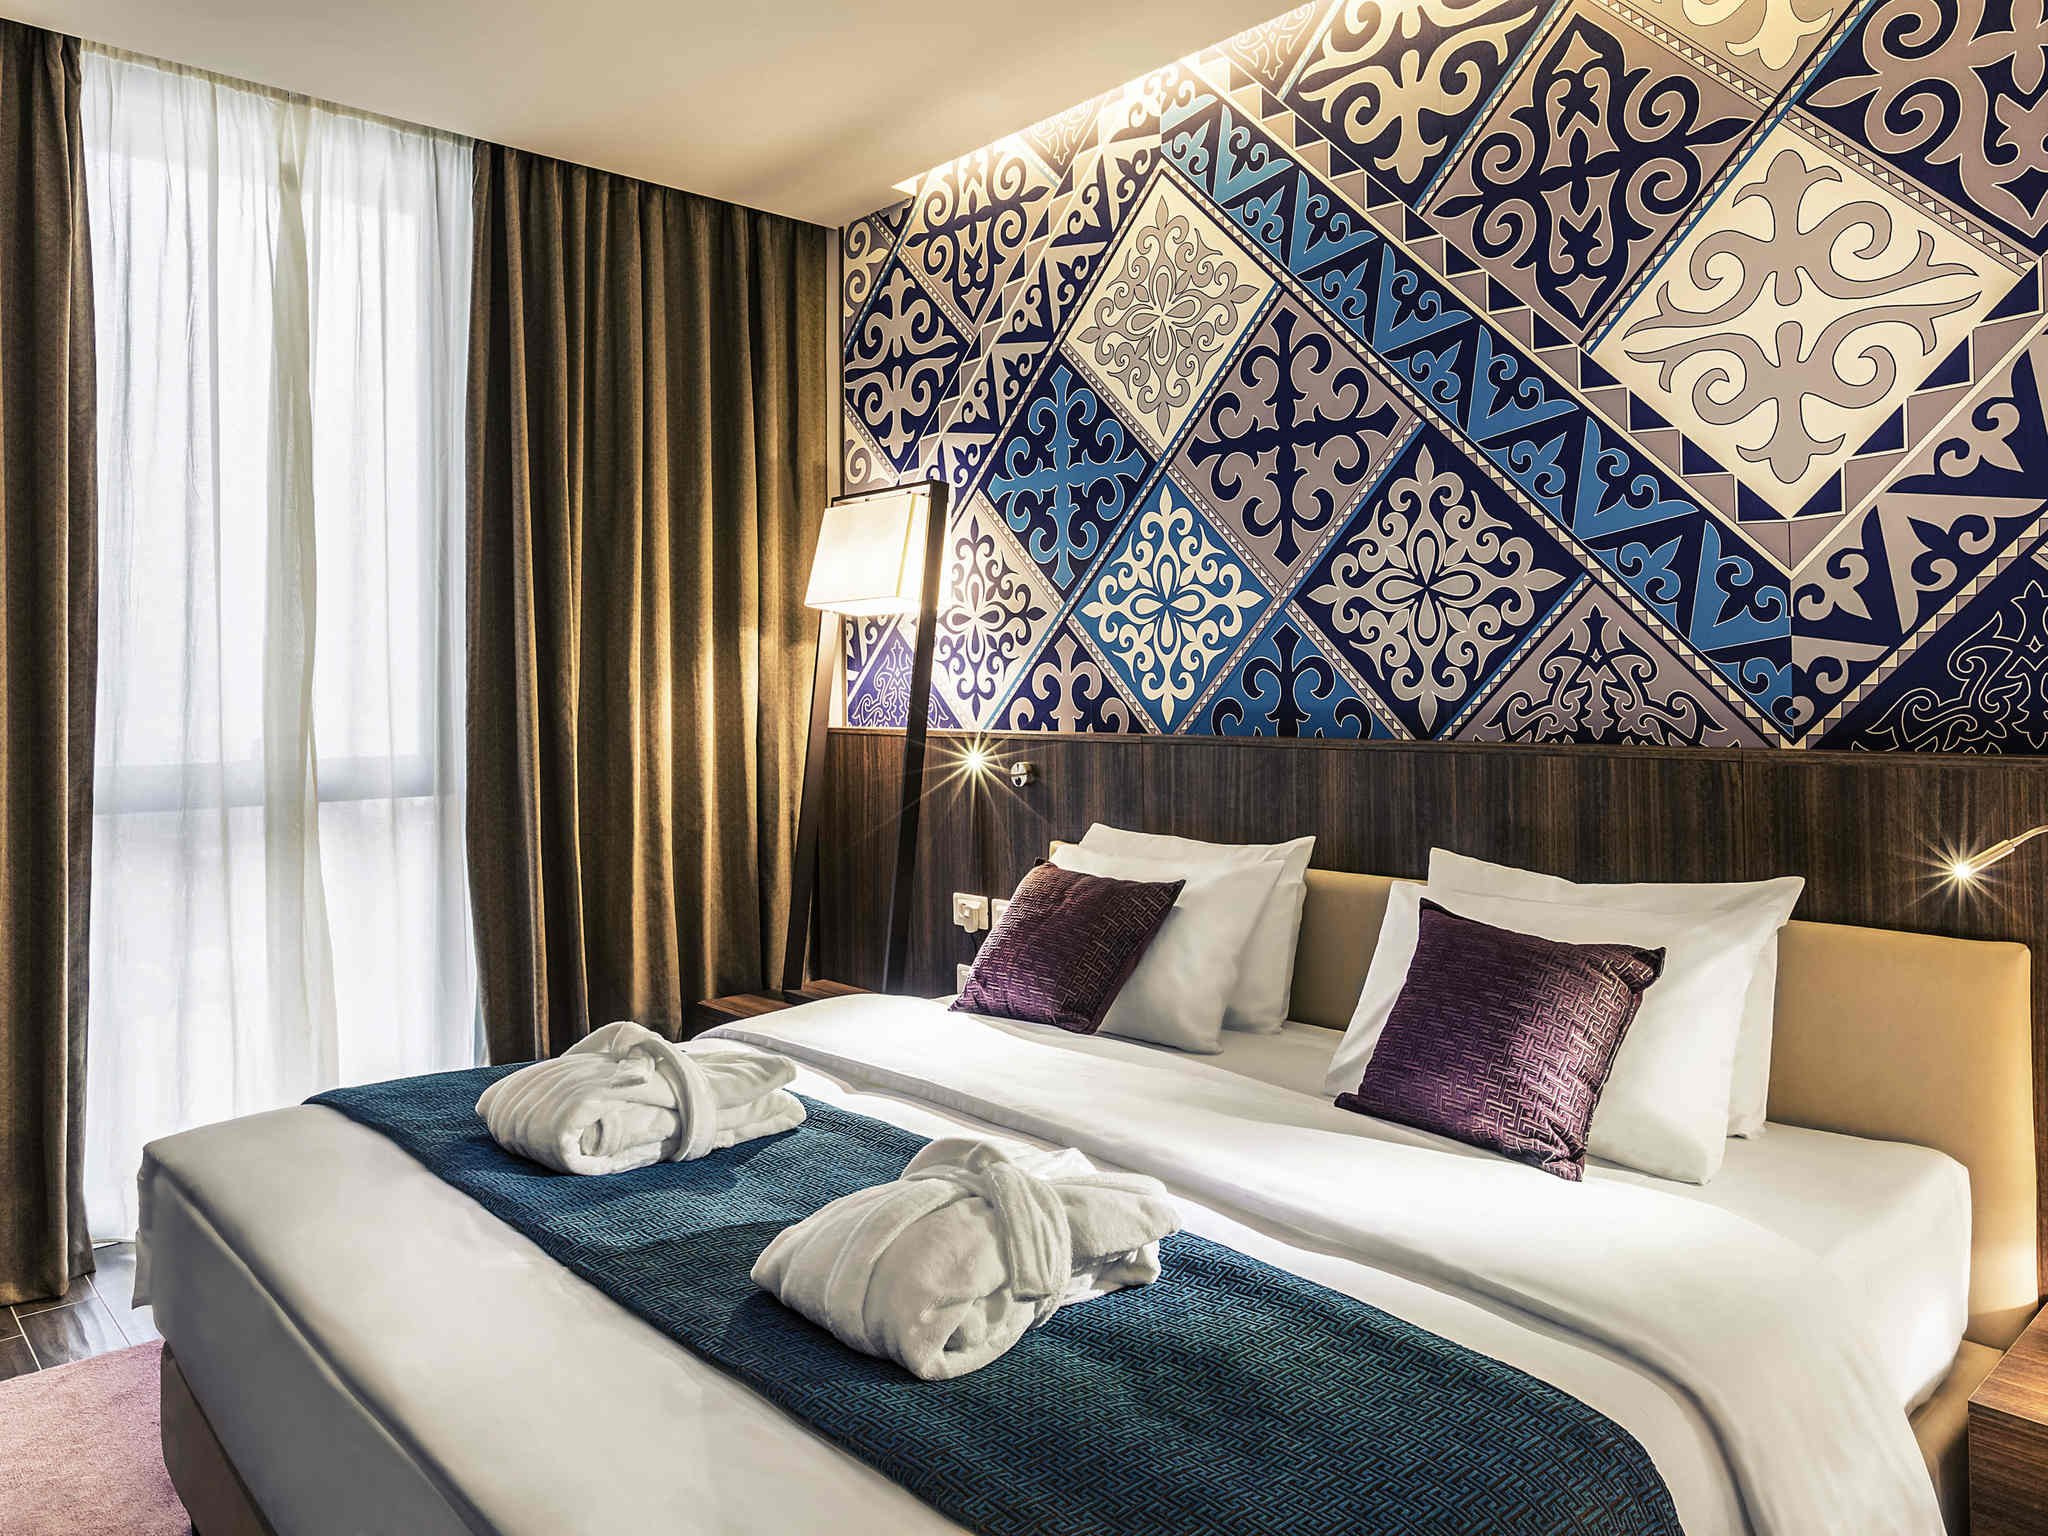 โรงแรม – Mercure Almaty City Center